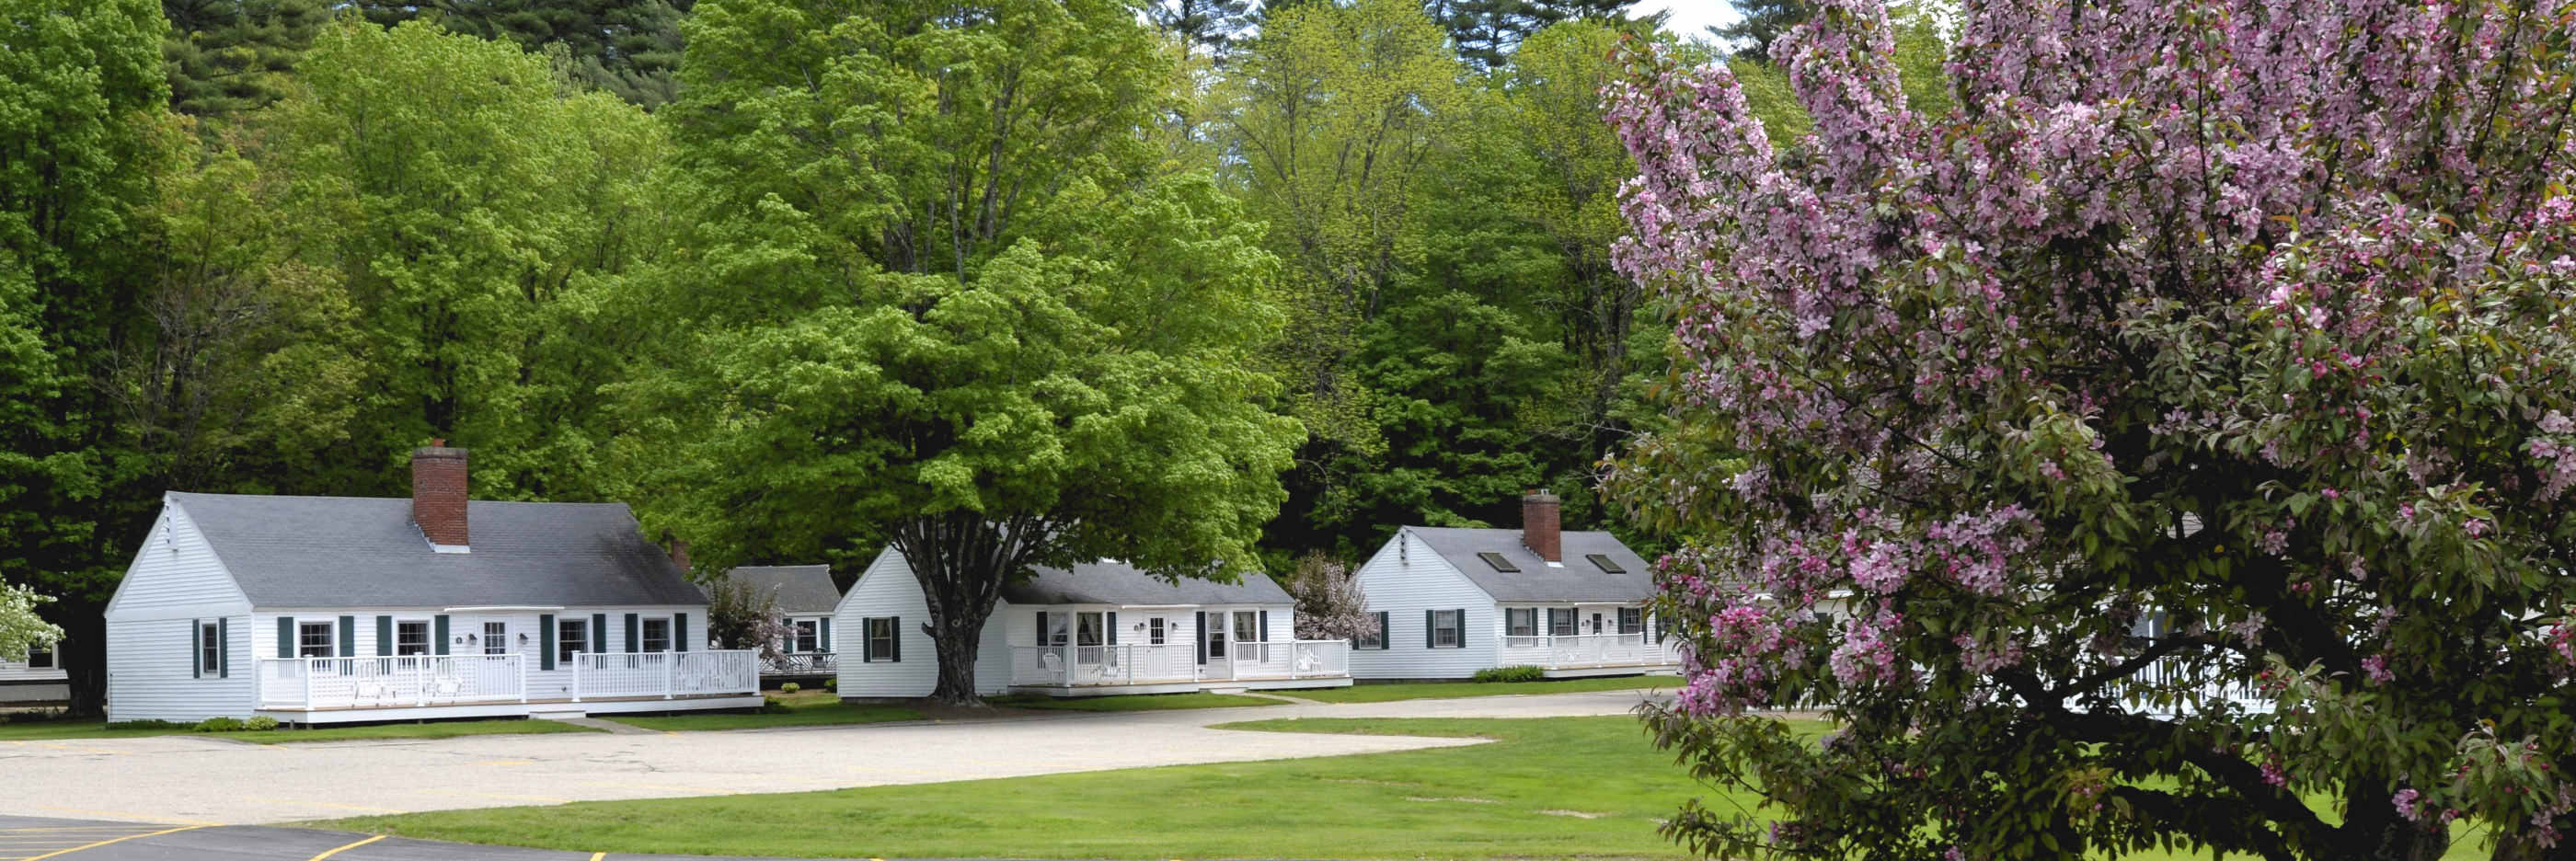 Phenomenal New England Inn Lodge Cabins Suites Rooms Download Free Architecture Designs Lectubocepmadebymaigaardcom